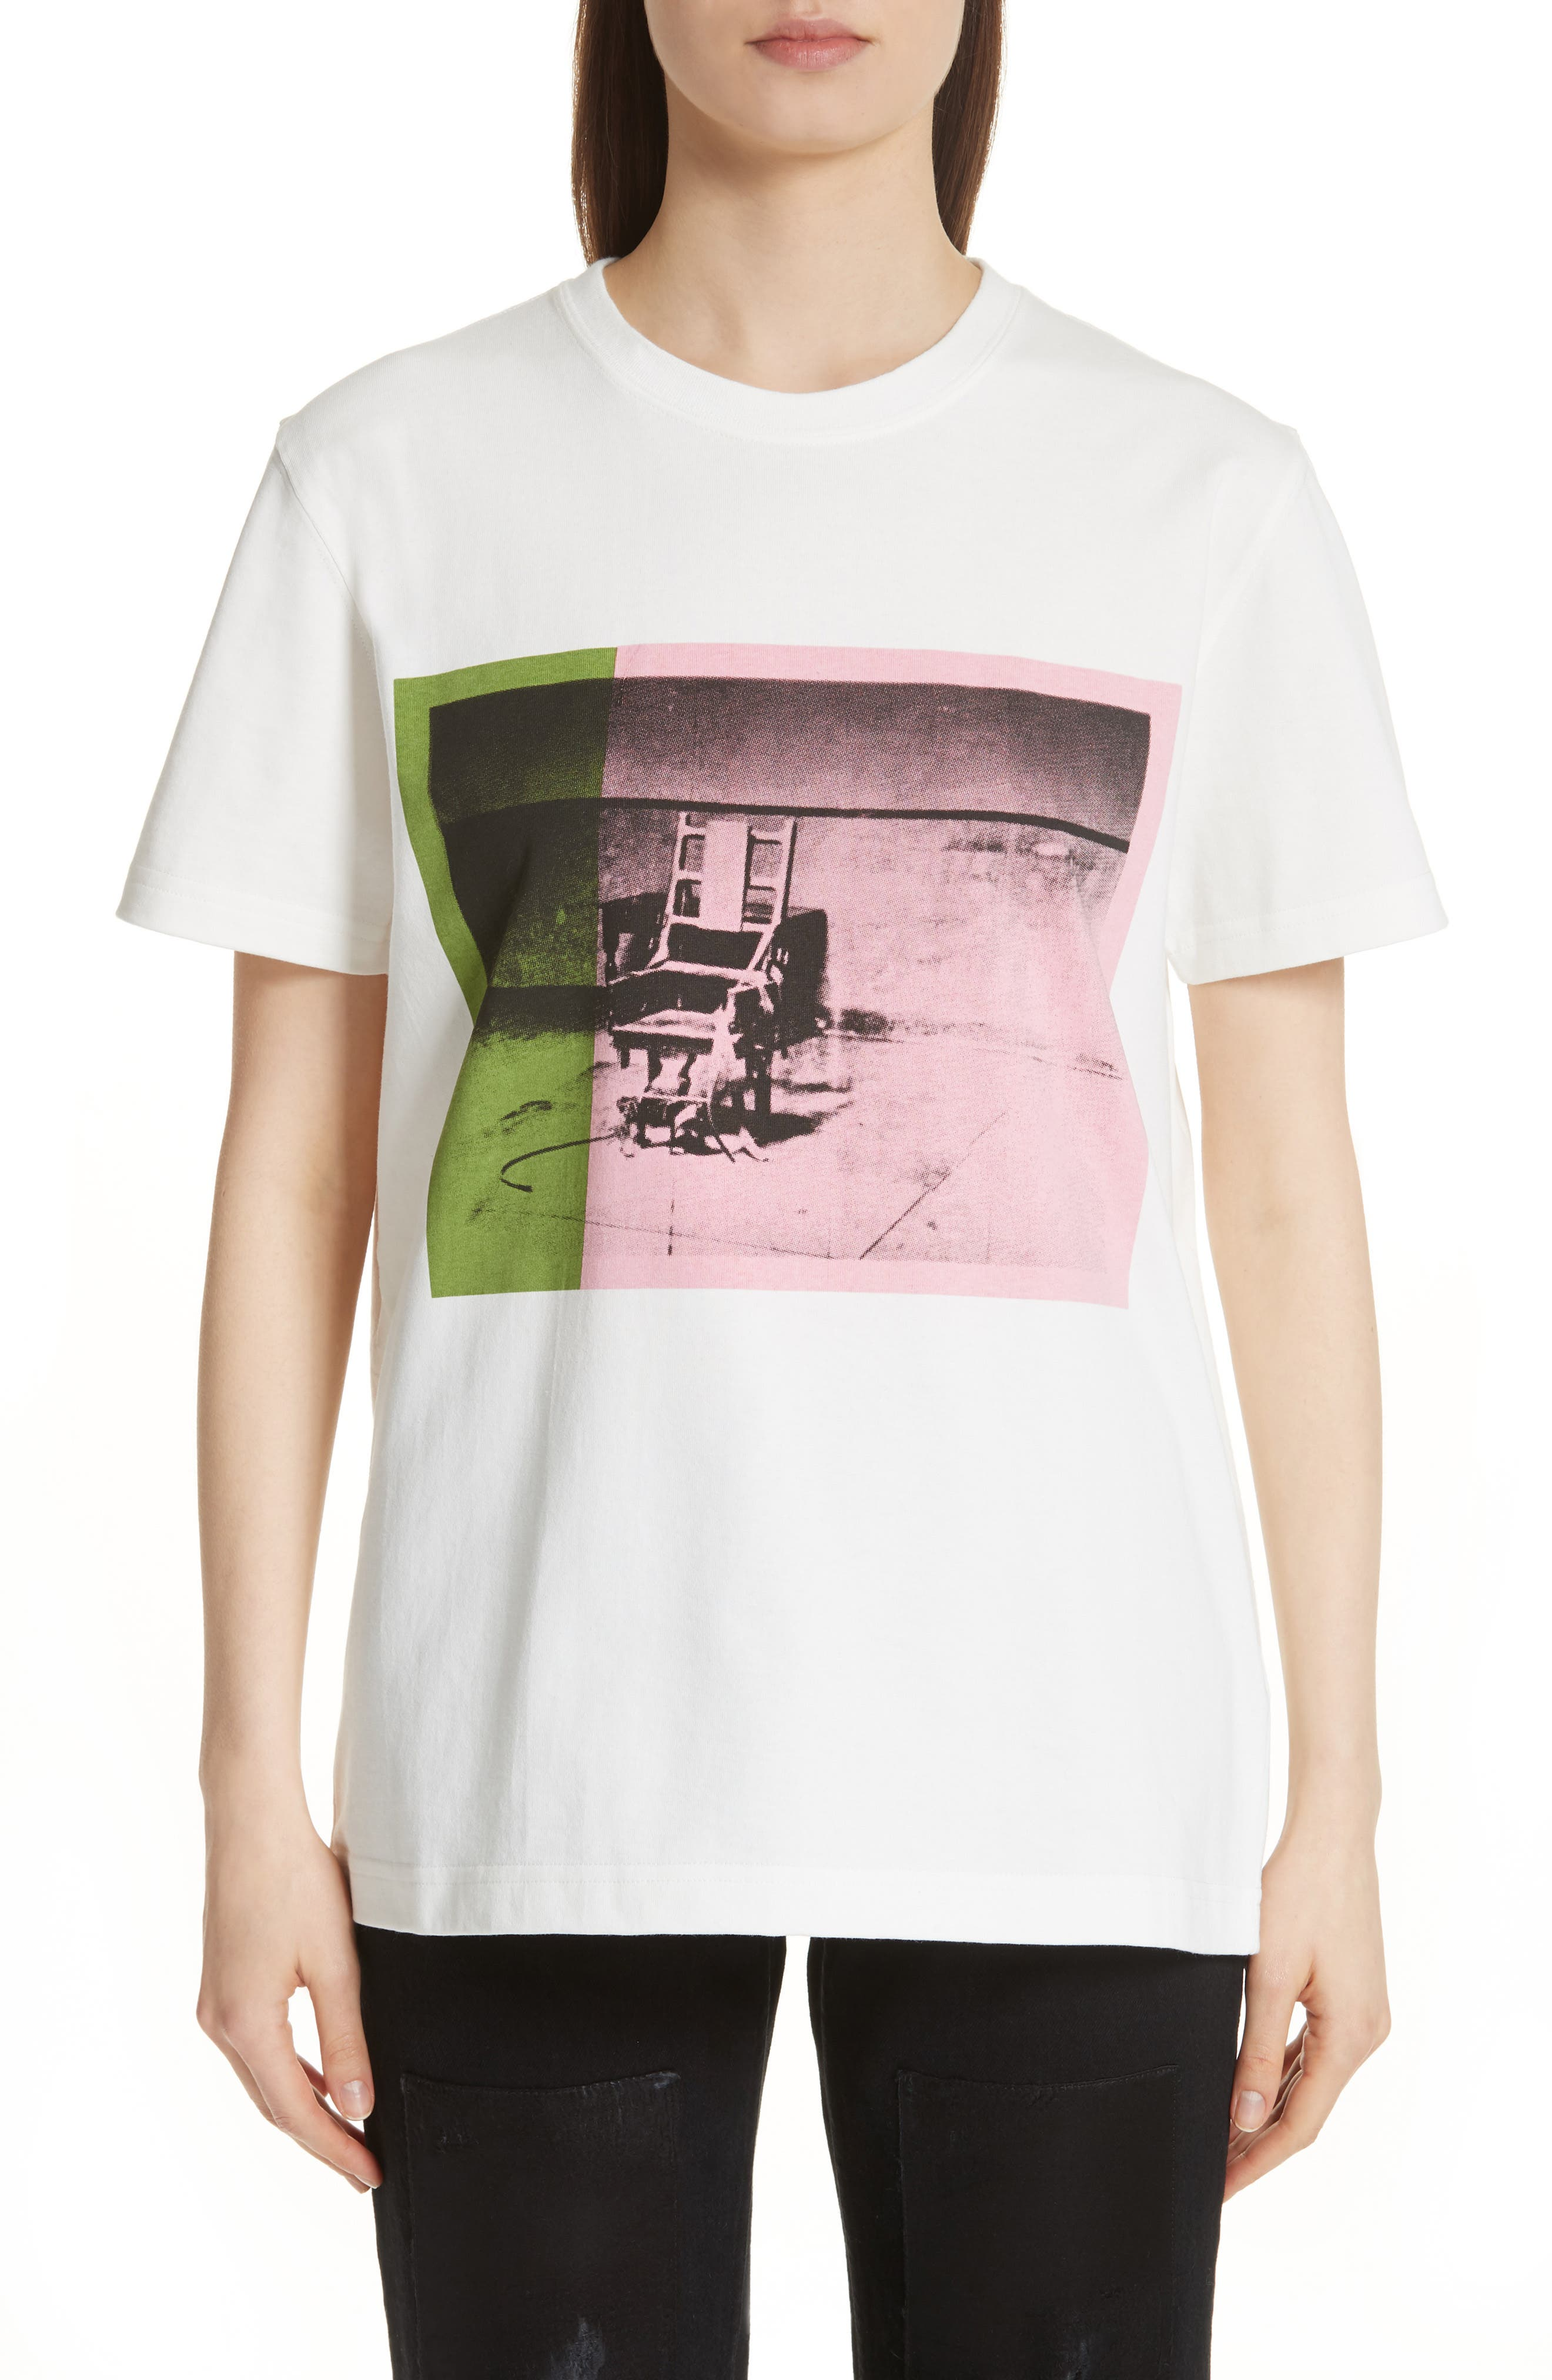 Main Image - CALVIN KLEIN 205W39NYC x Andy Warhol Foundation Electric Chair Graphic Tee